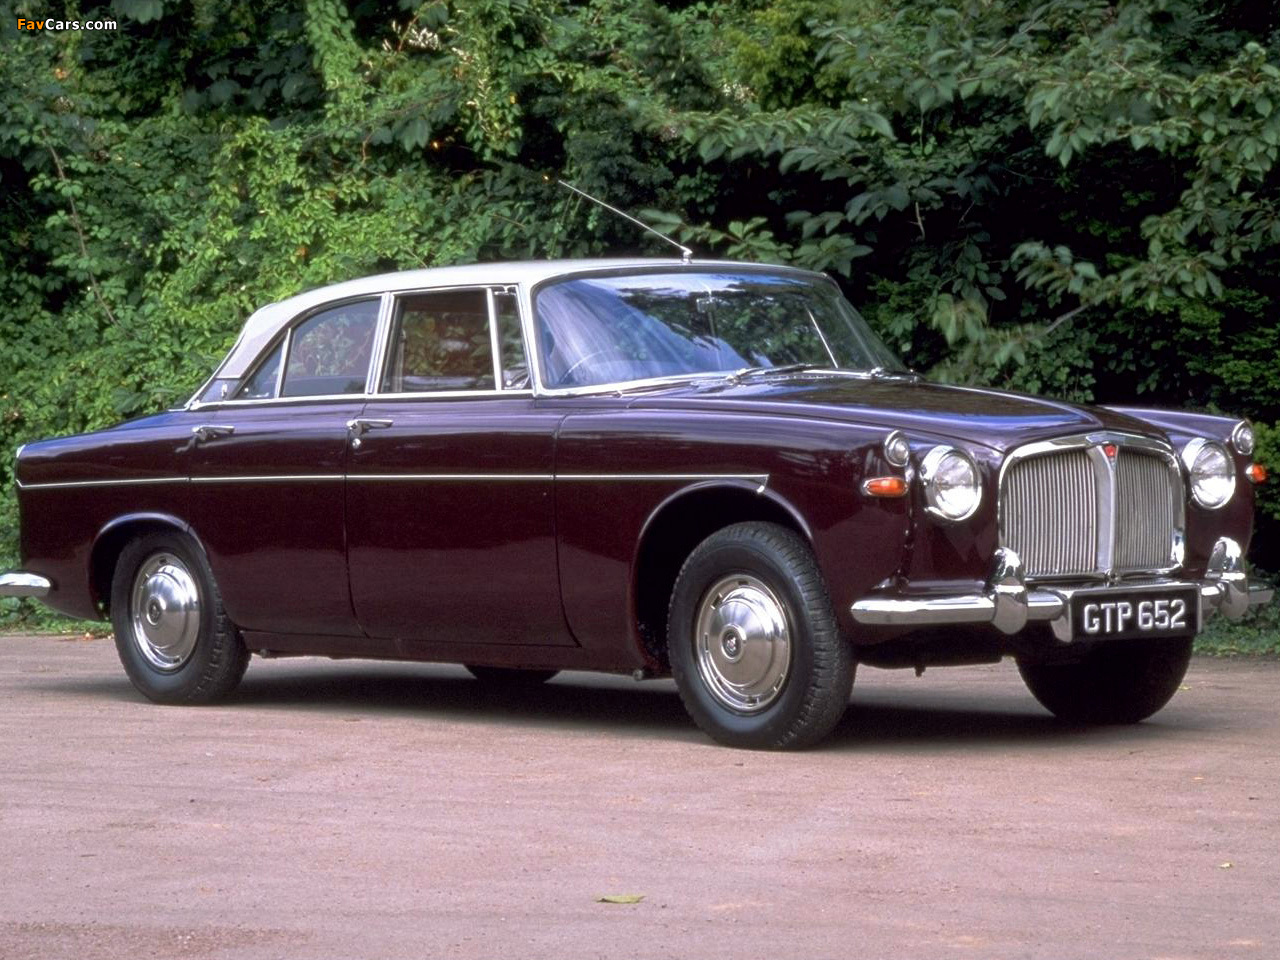 Rover P5 Coupe Mark Ii 1962 65 Wallpapers 31354 on car video